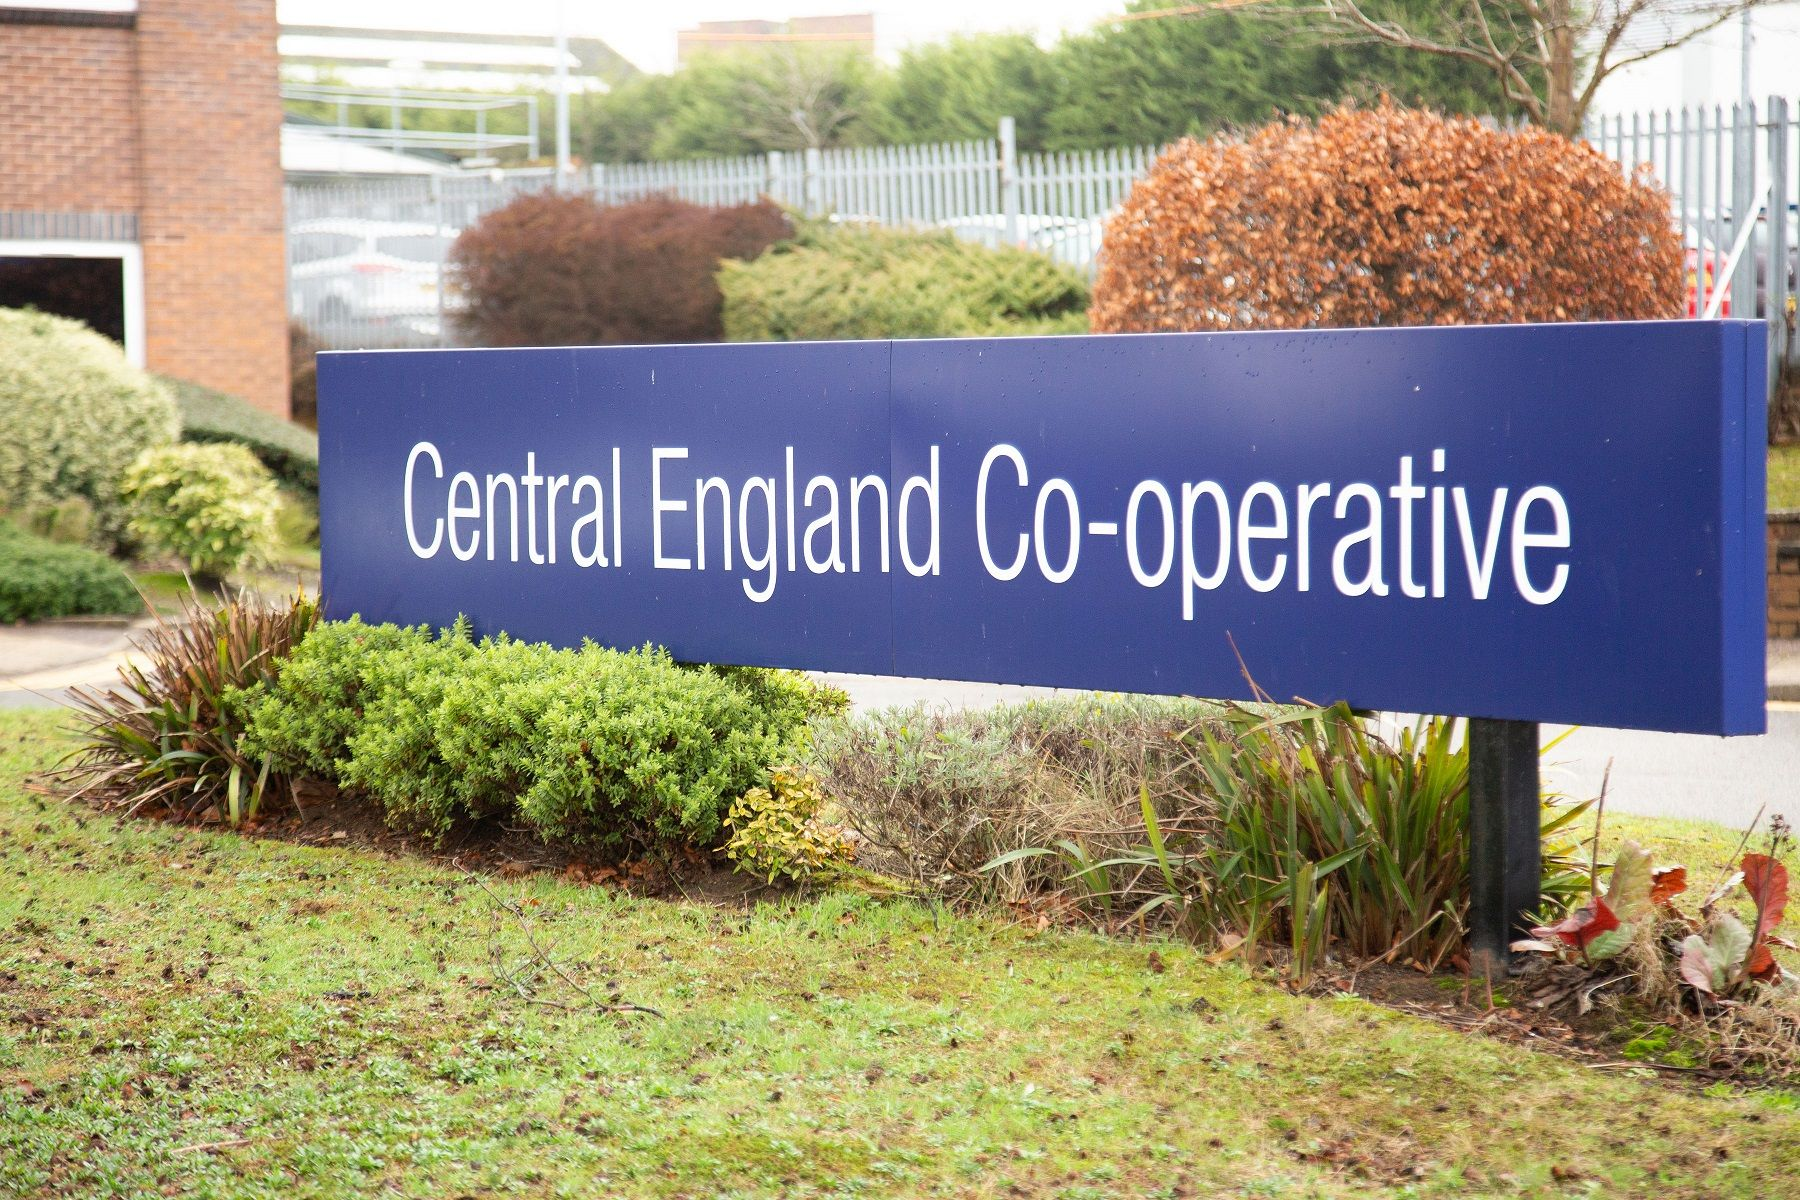 Help us win Leading Co-operative of the Year 2019